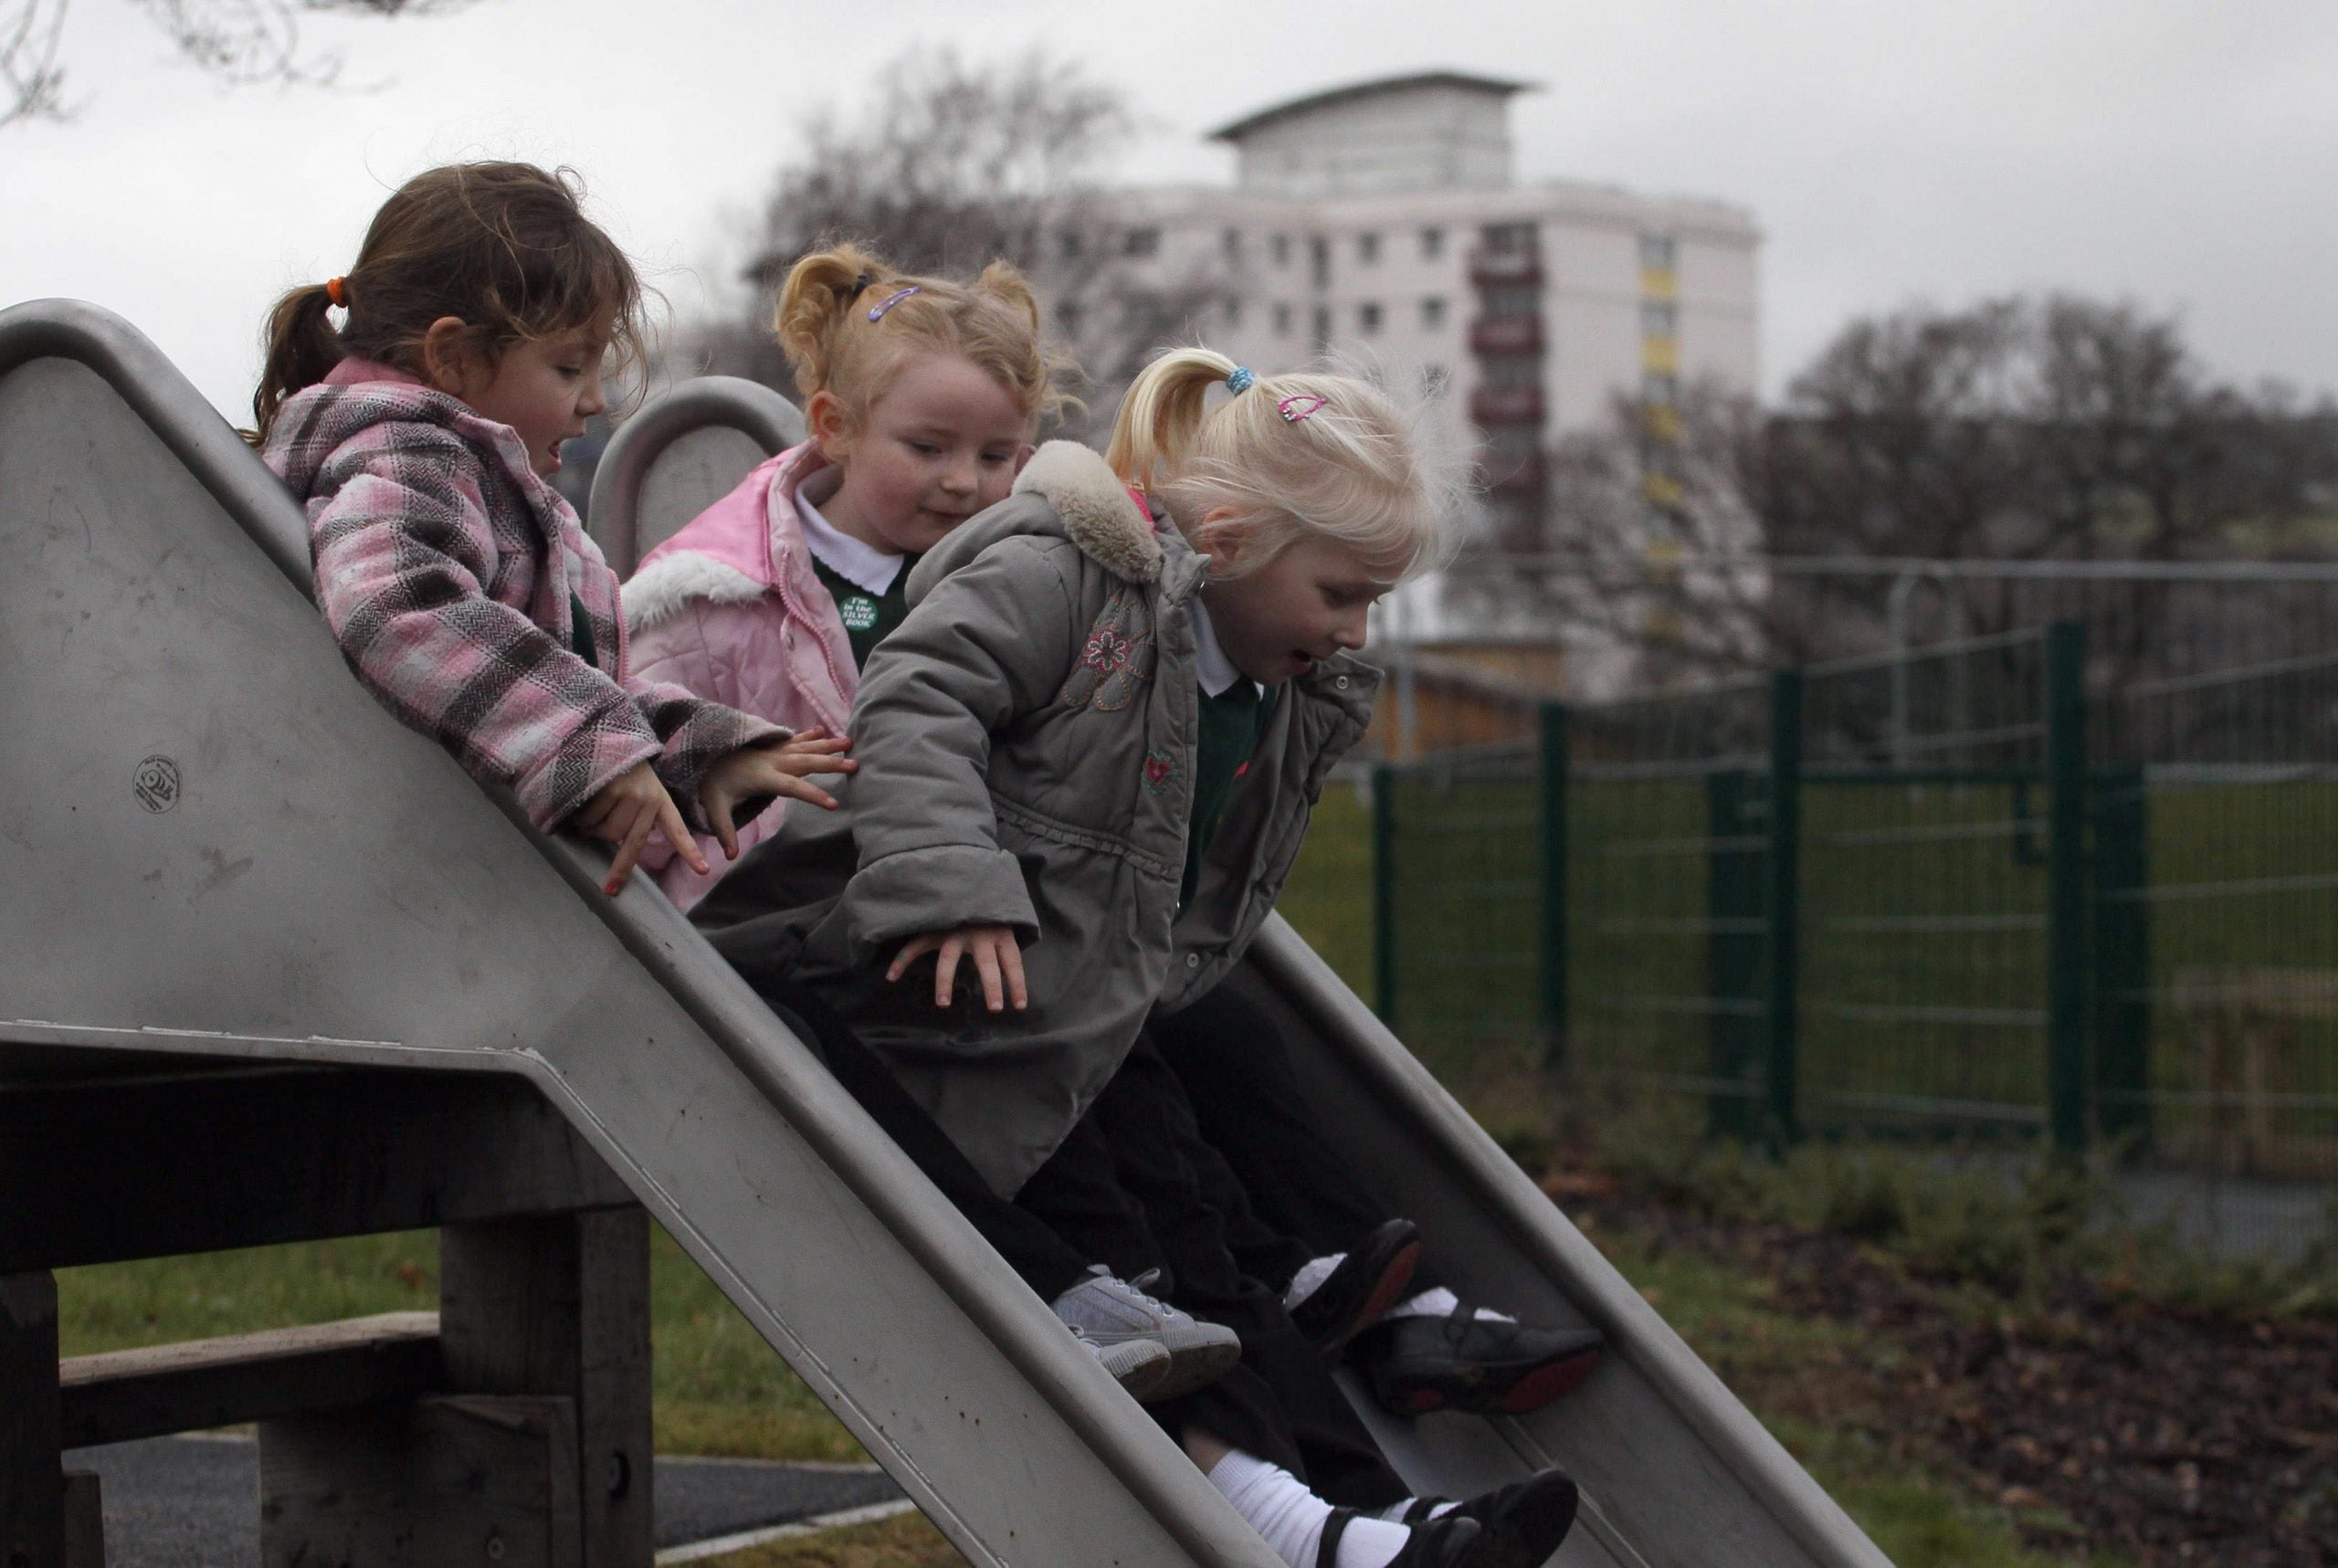 The SATs strike: why parents are taking their children out of school to protest against exams